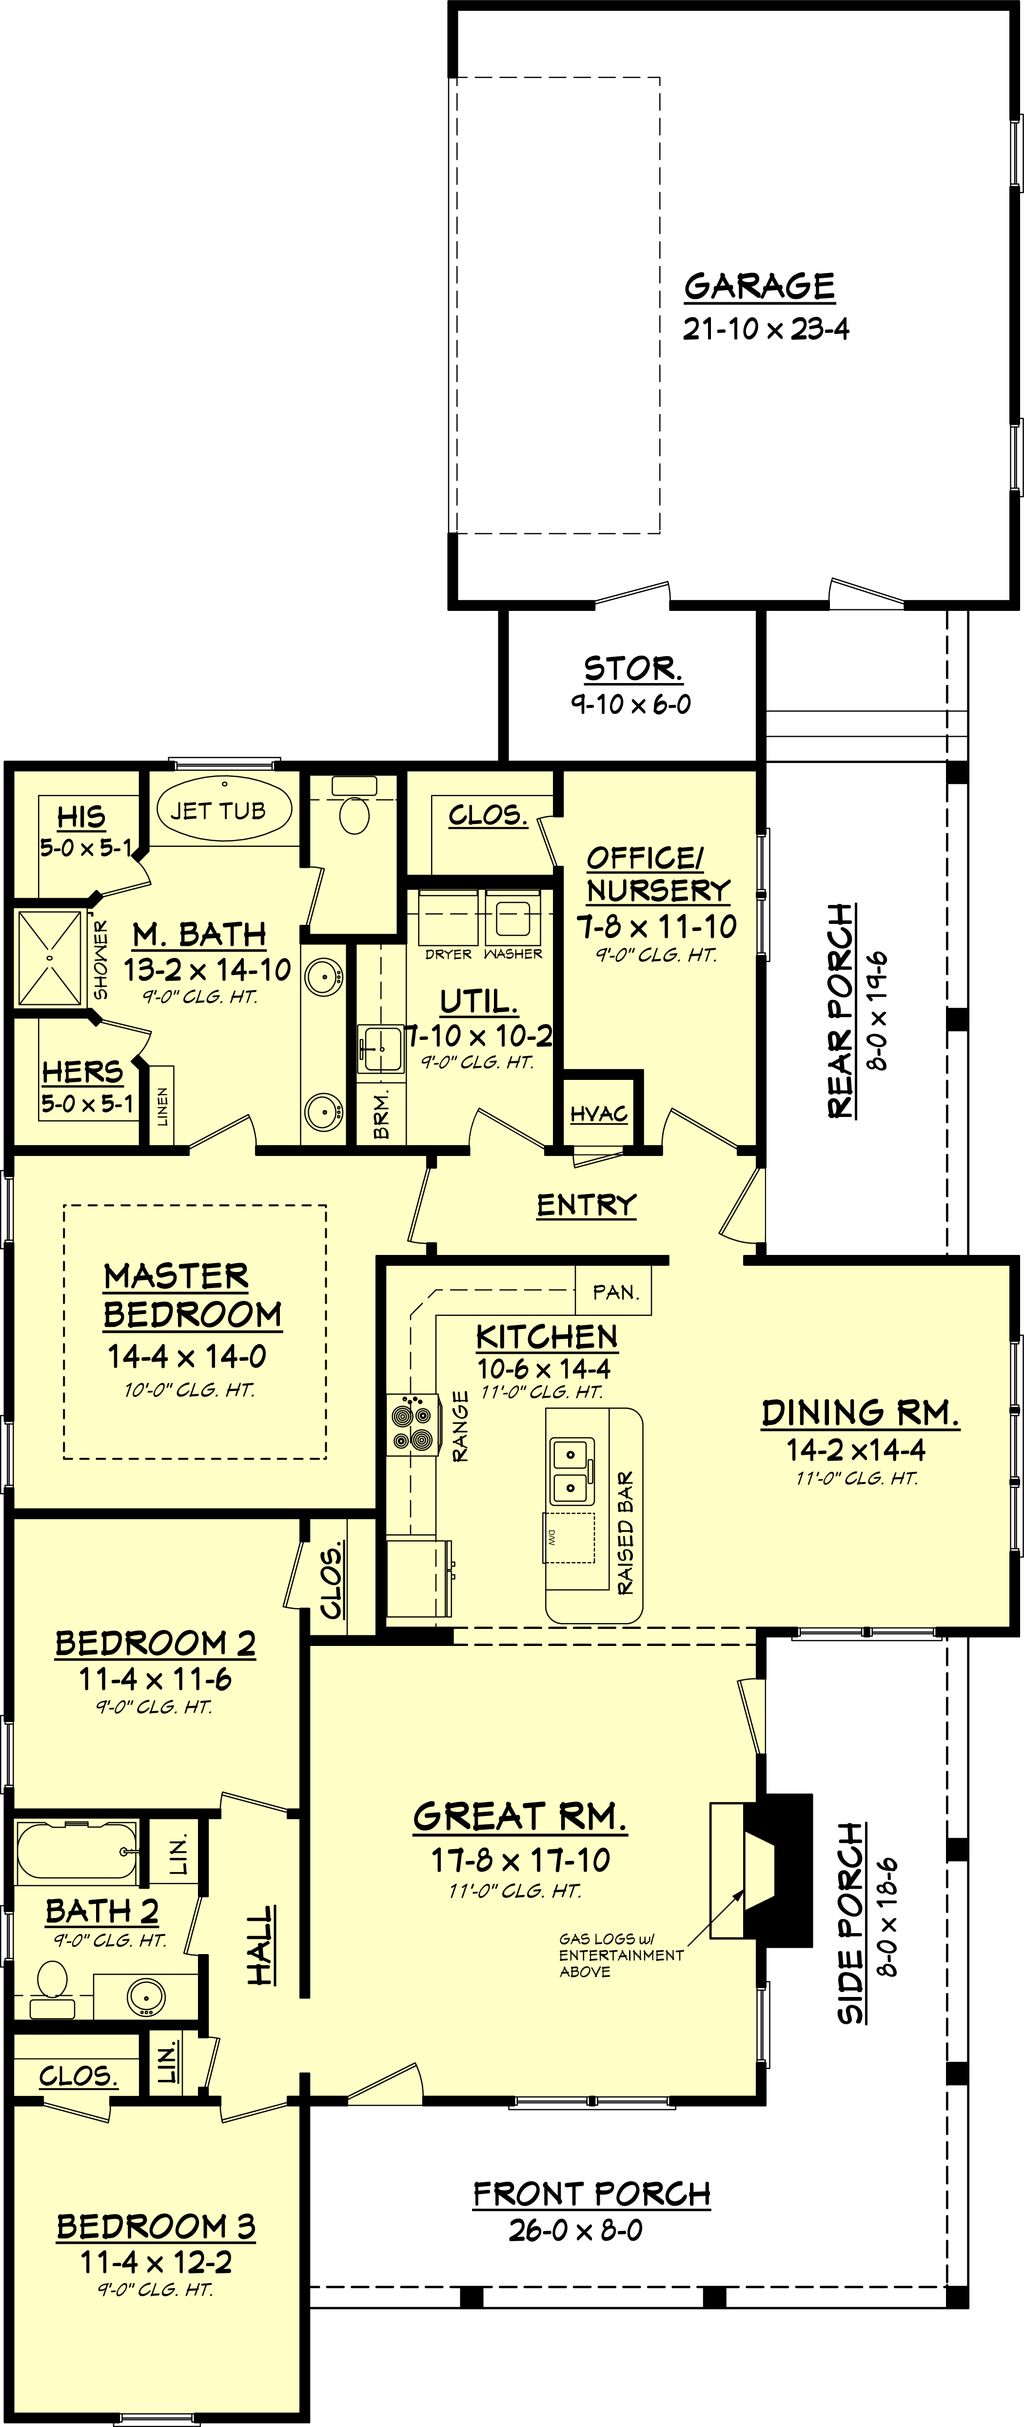 Amazing Country Style House Plan   3 Beds 2 Baths 1900 Sq/Ft Plan #430 56 Floor Plan    Main Floor Plan   Houseplans.com